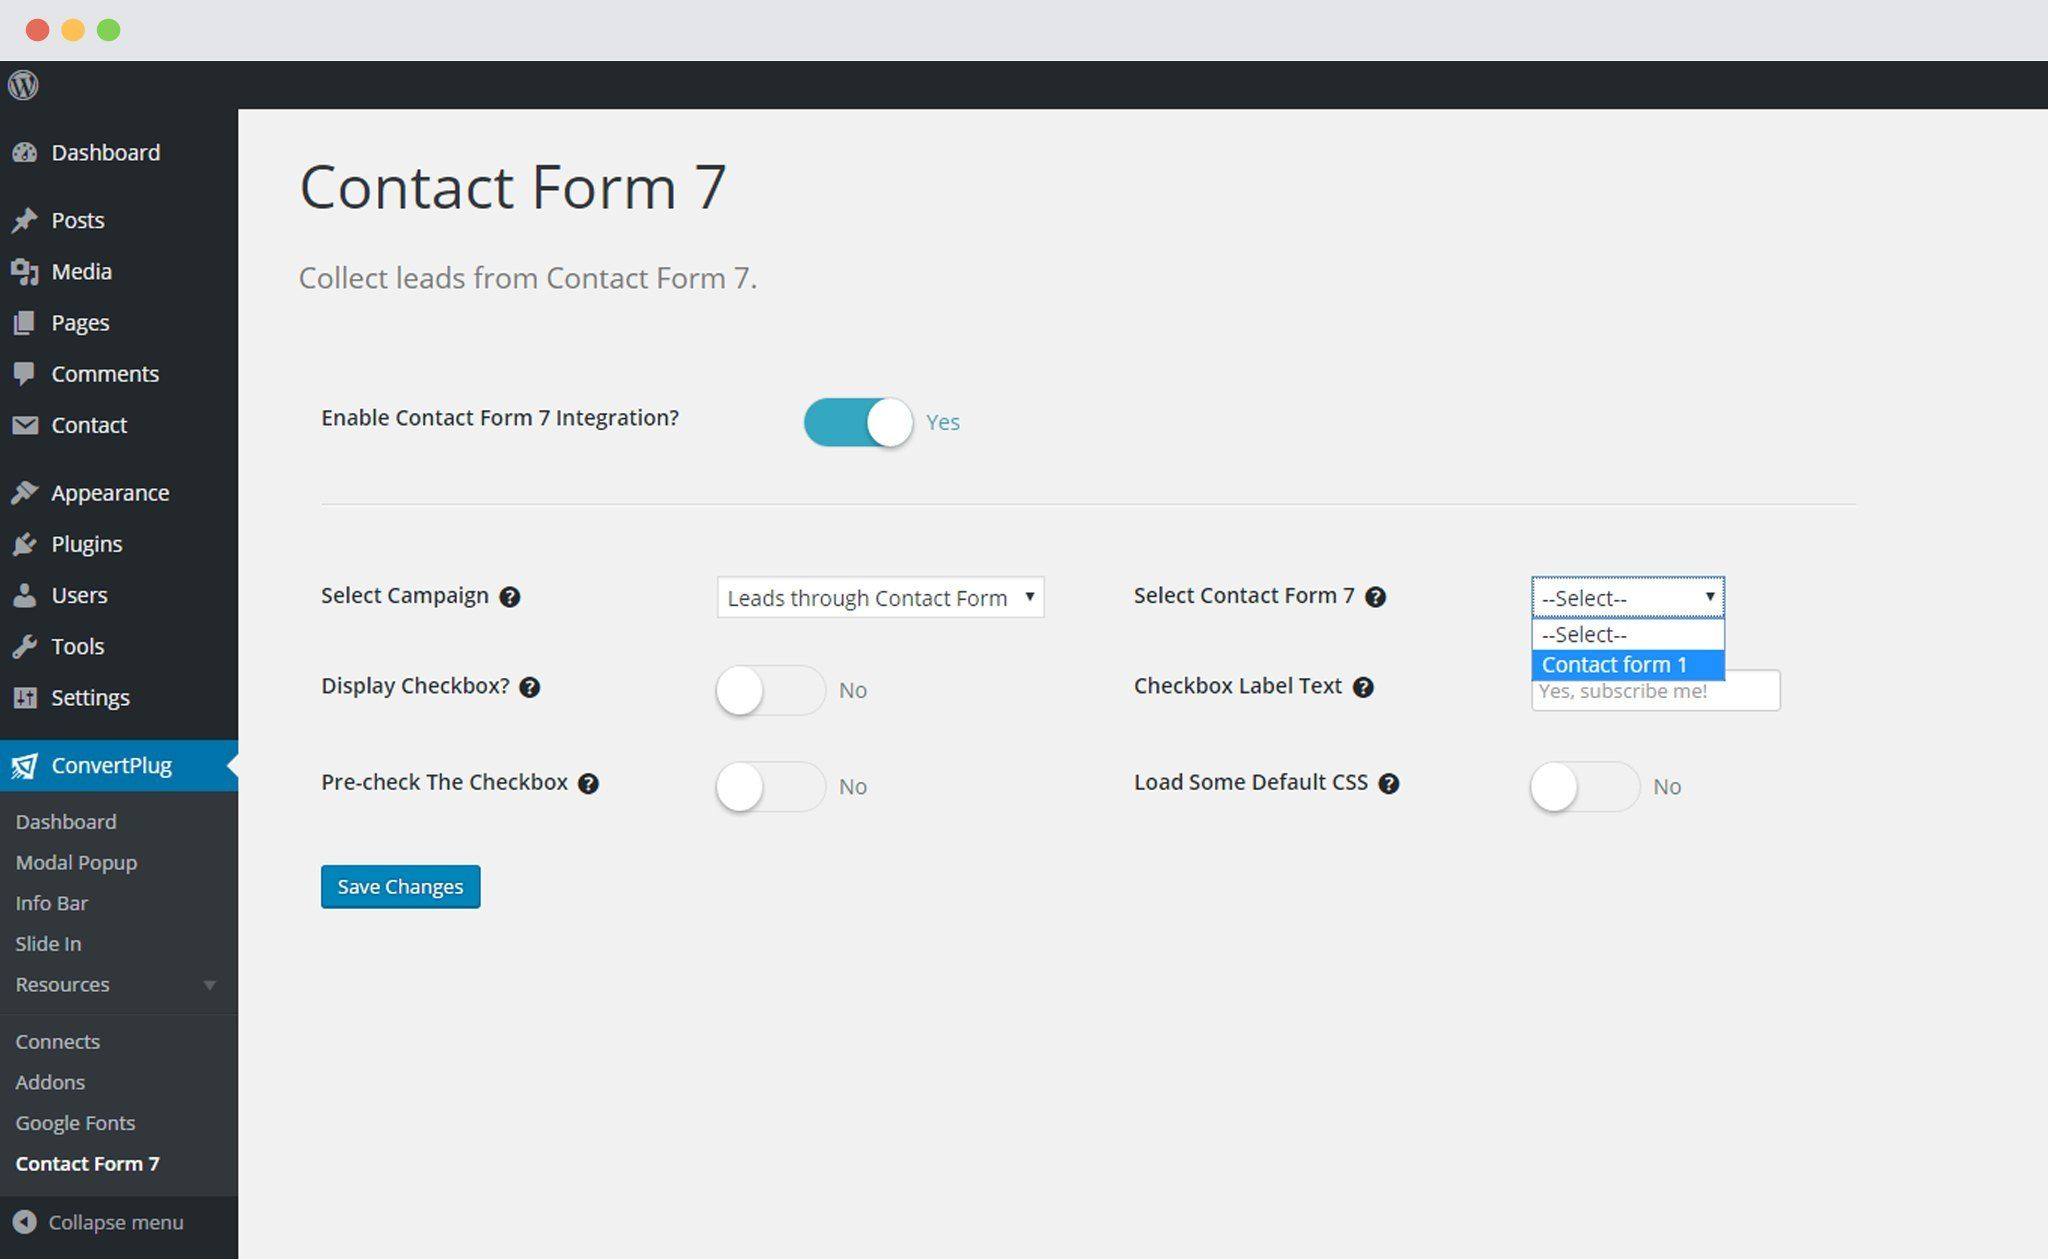 Select Contact Form